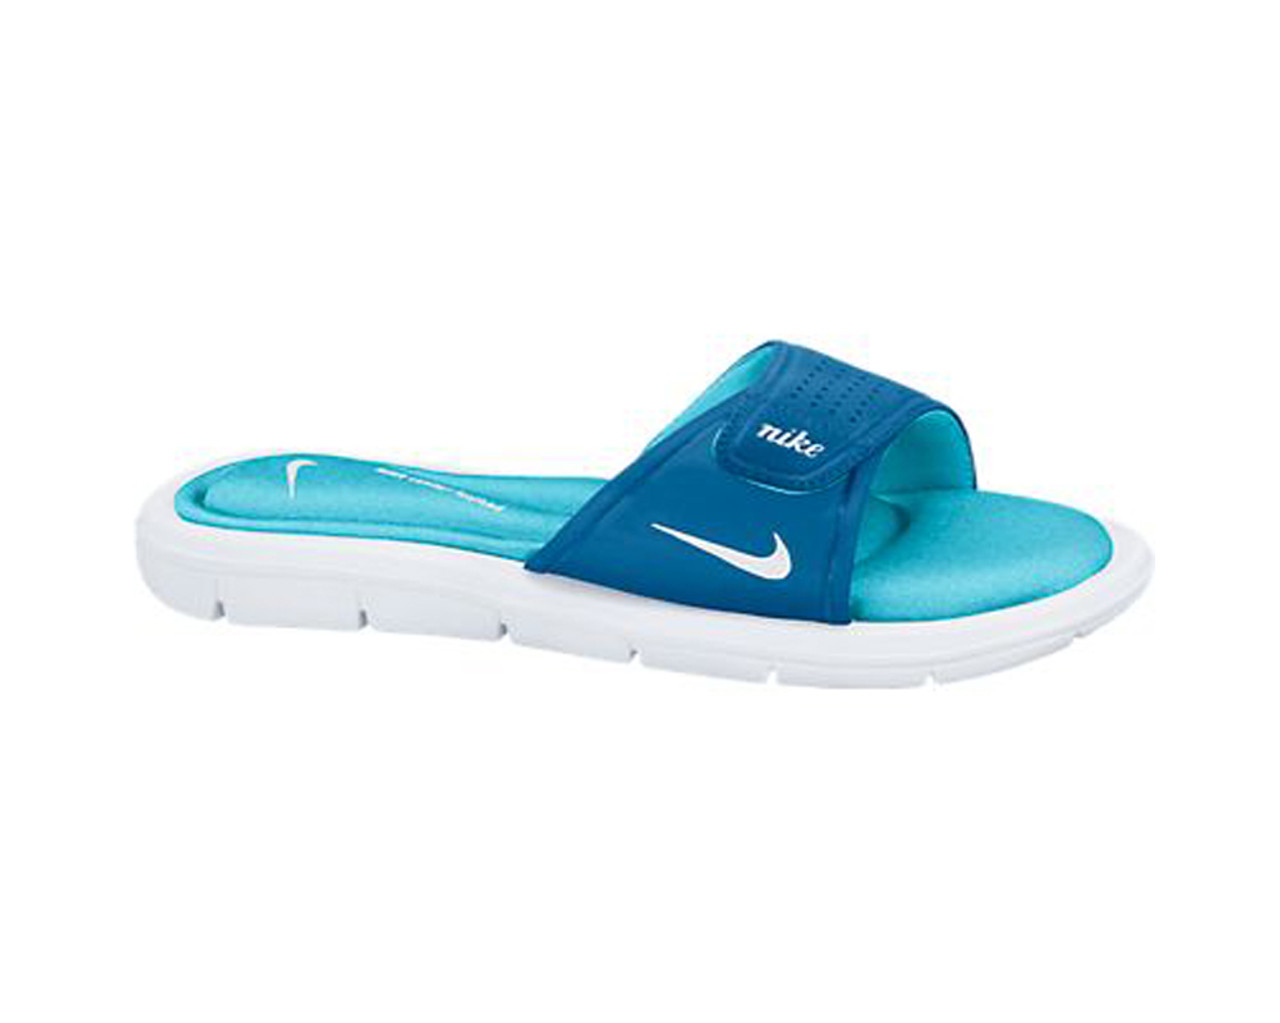 db68f9bbdfe8 Nike Women s Comfort Slide Blue Clearwater - Shop now   Shoolu.com